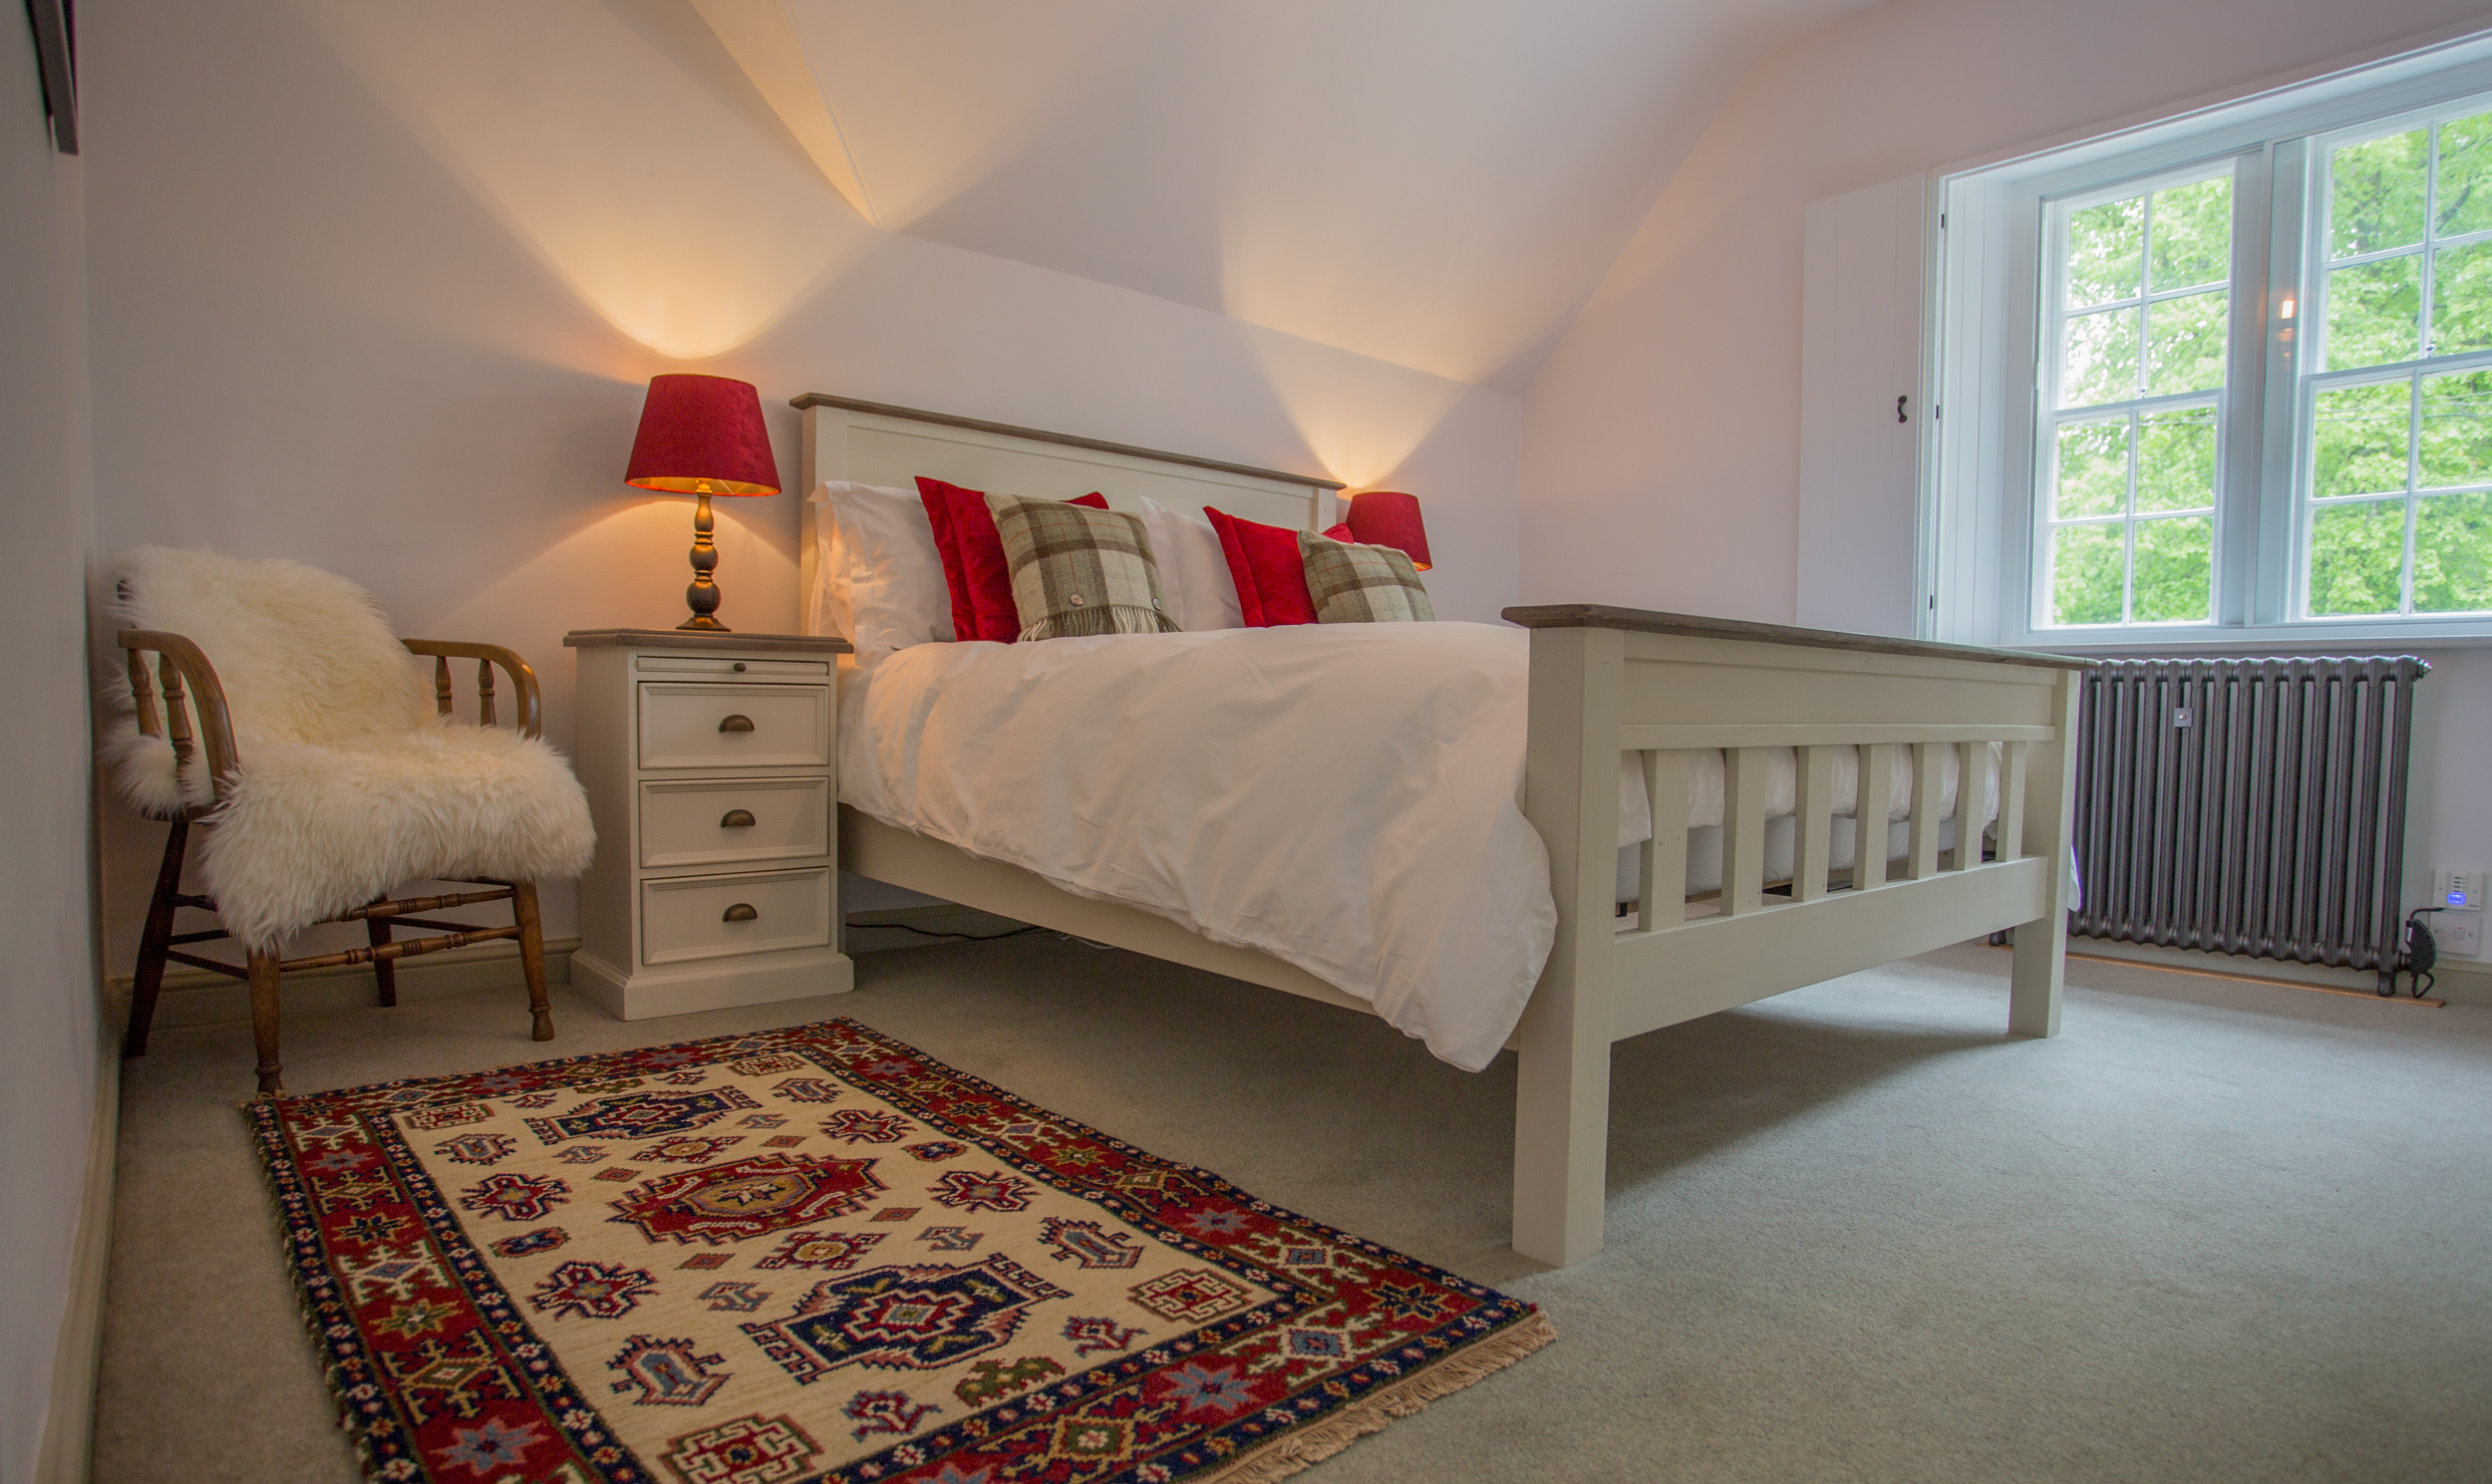 rural holiday cottages in beautiful locations, cottages in the countryside near a castle, rent a castle